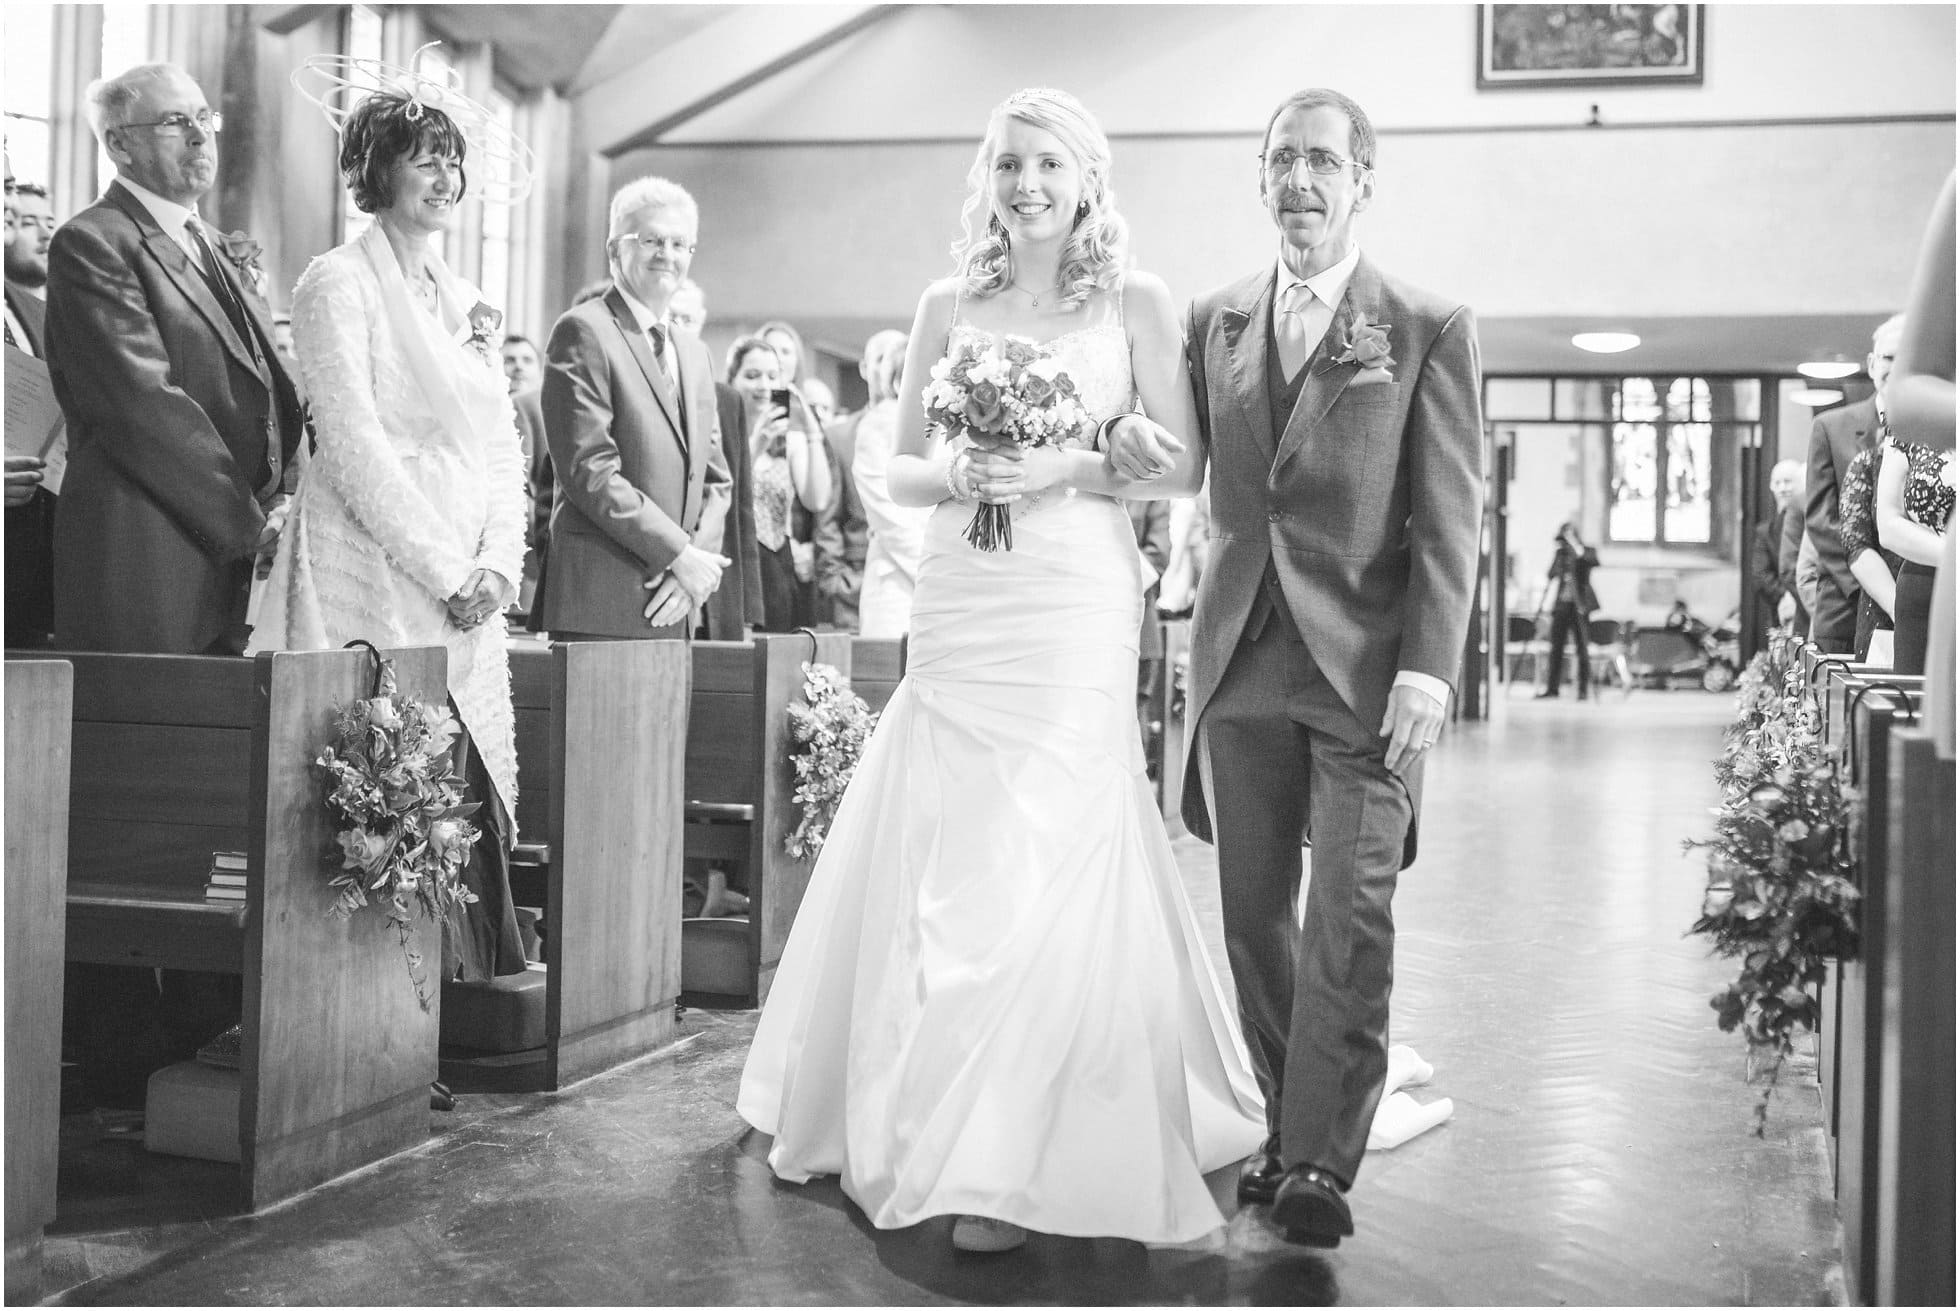 The bride's walk down the aisle in Birstall near Leicester